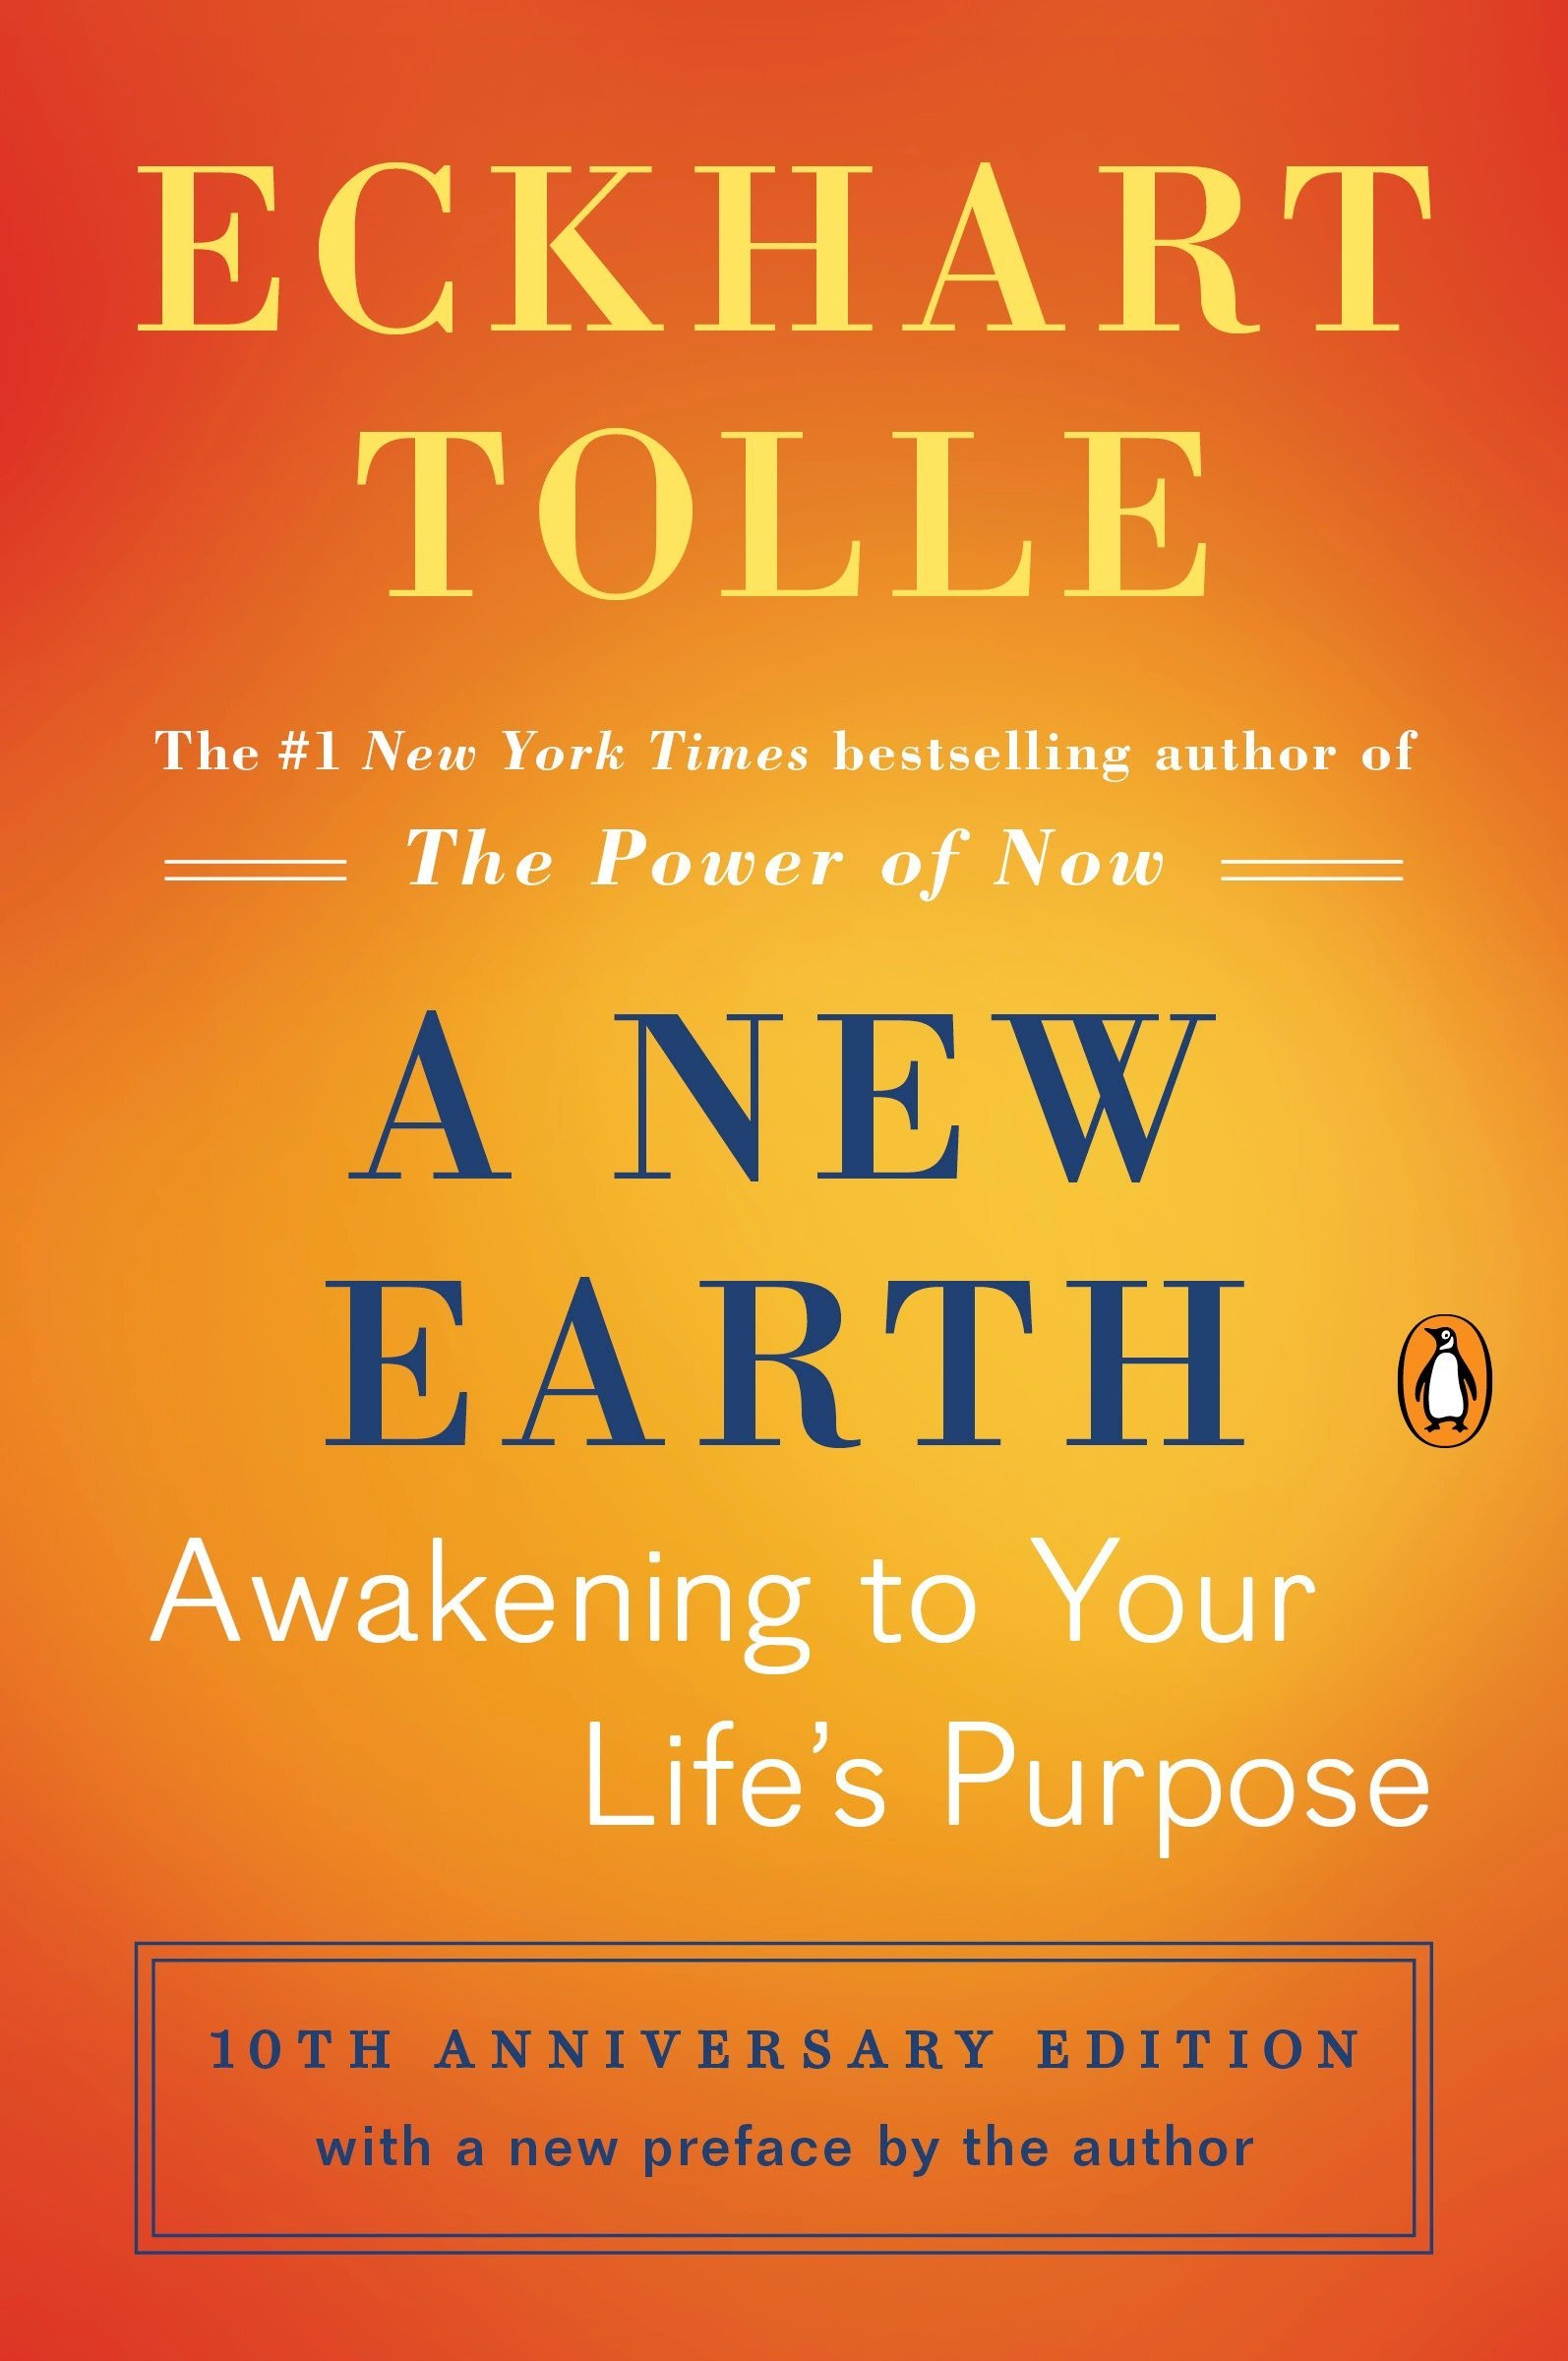 A New Earth - By Eckhart Tolle